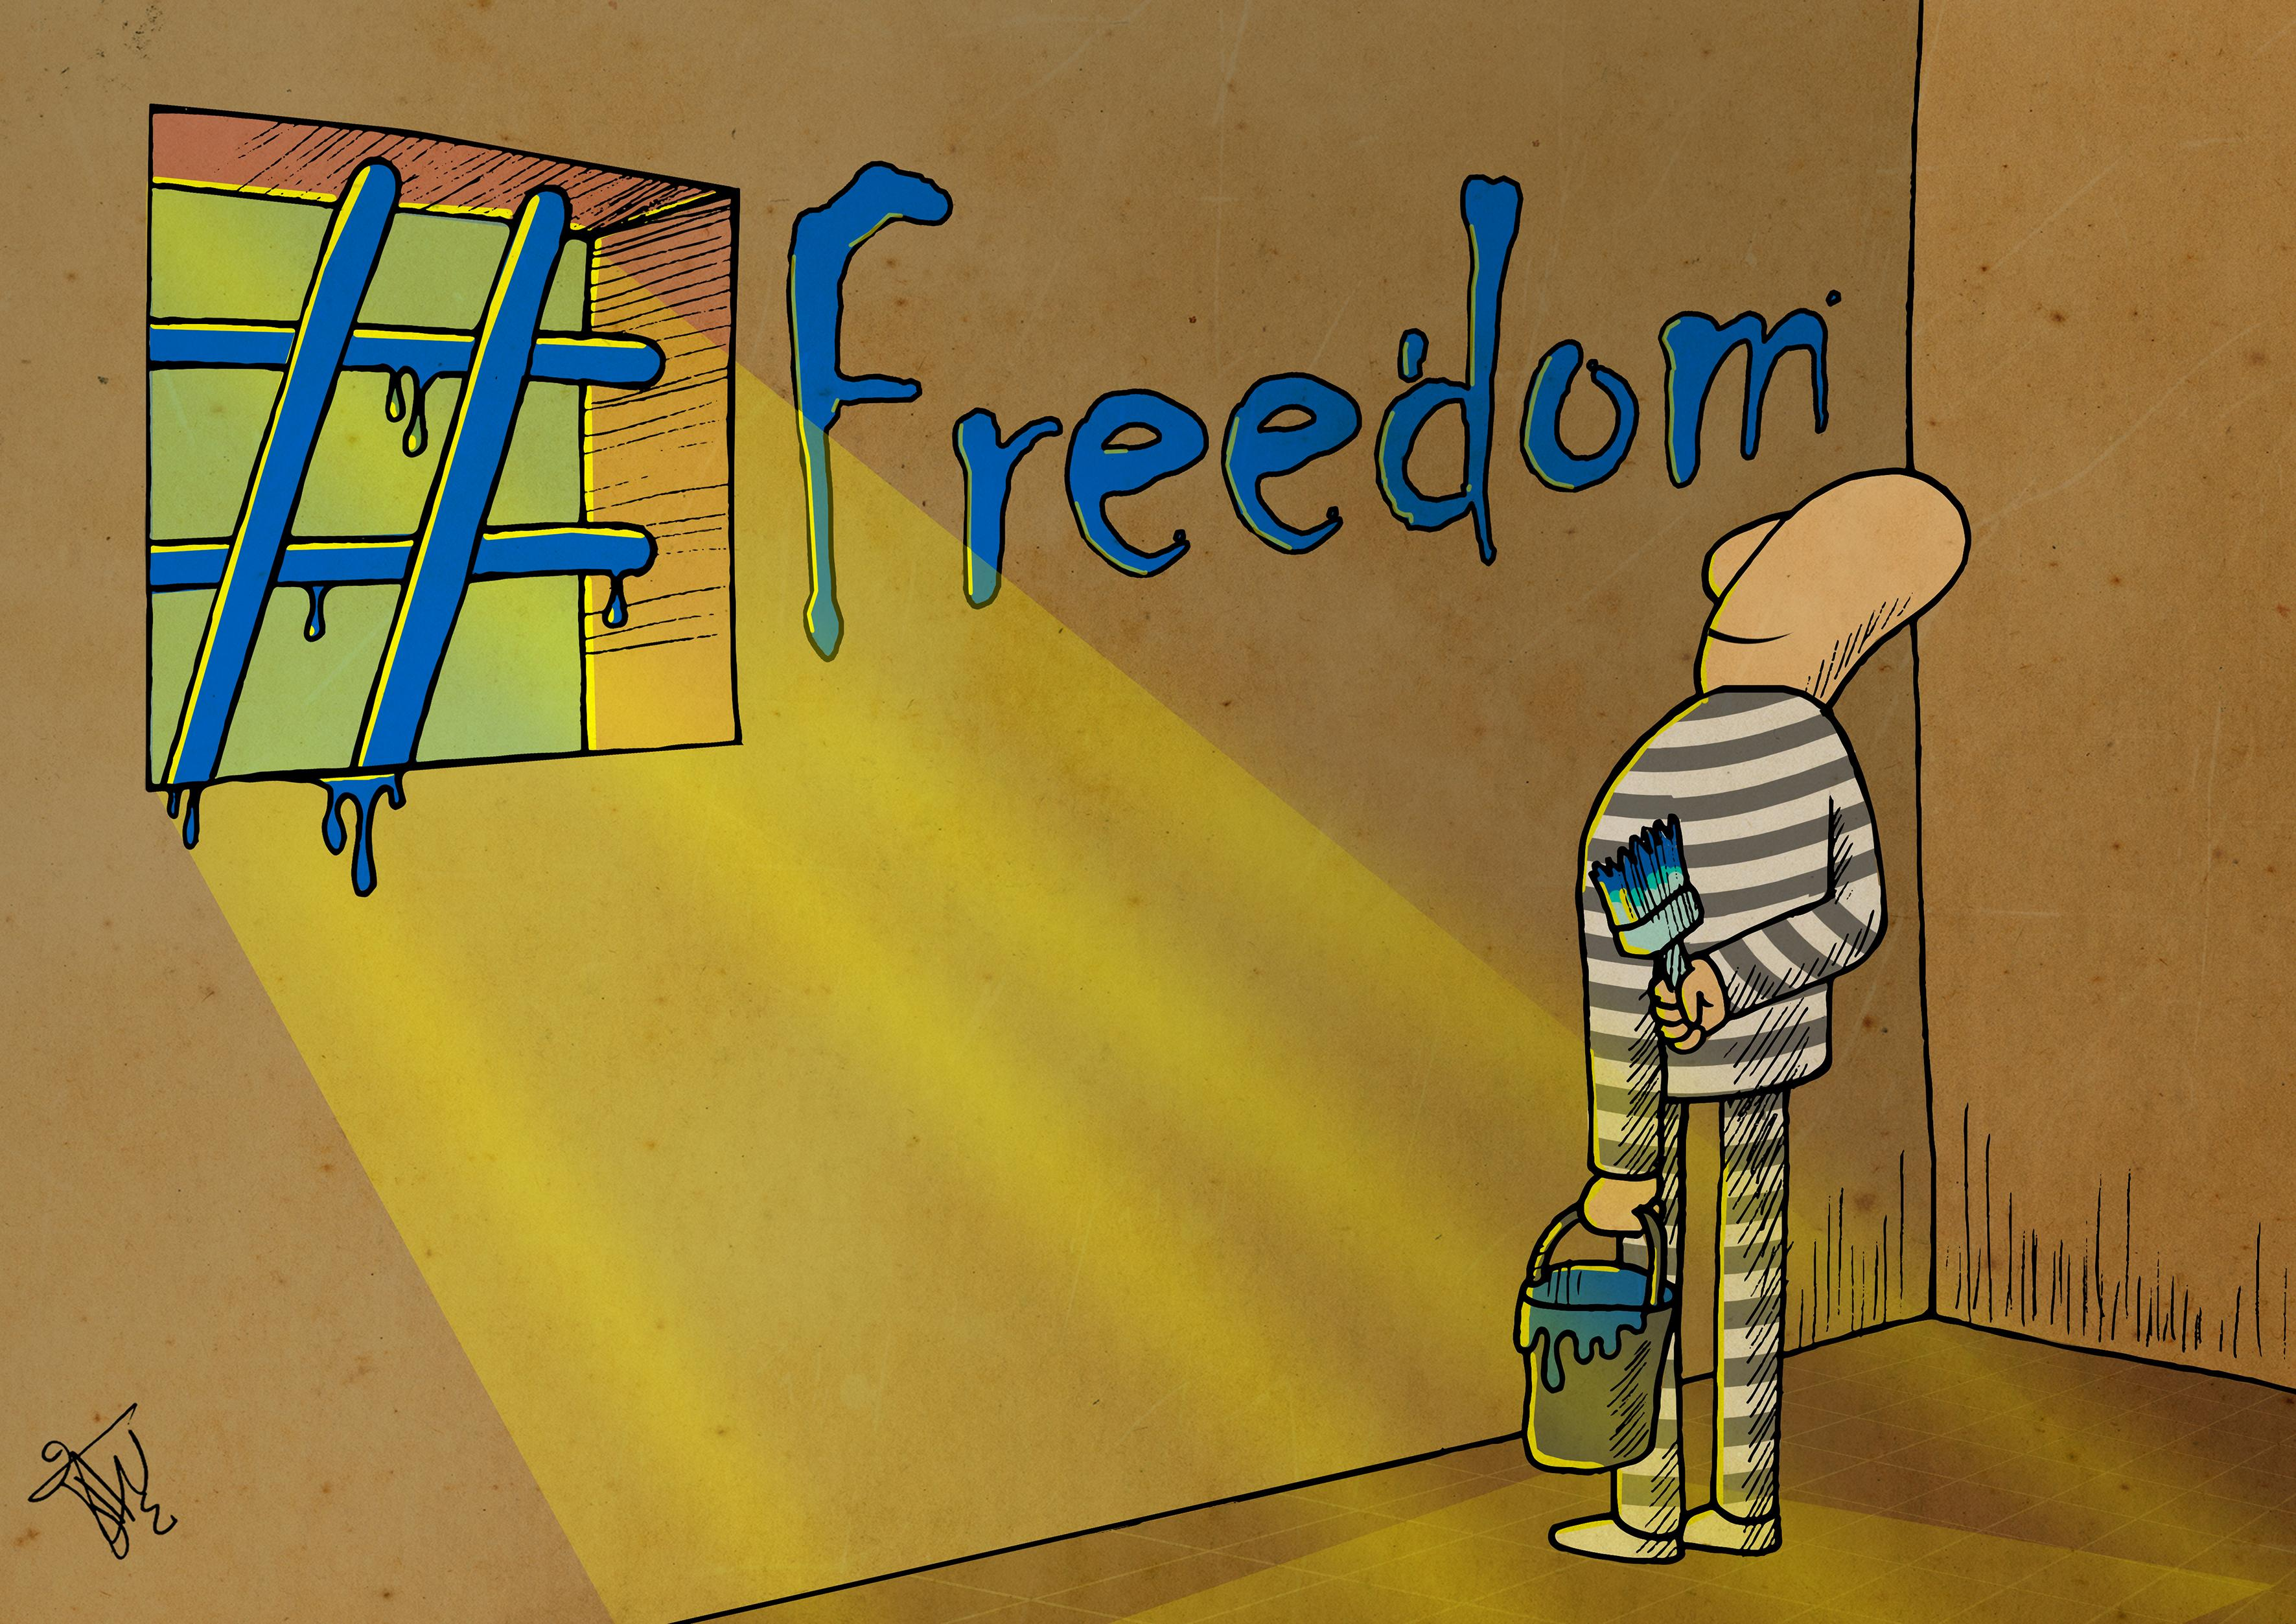 Social media and freedom